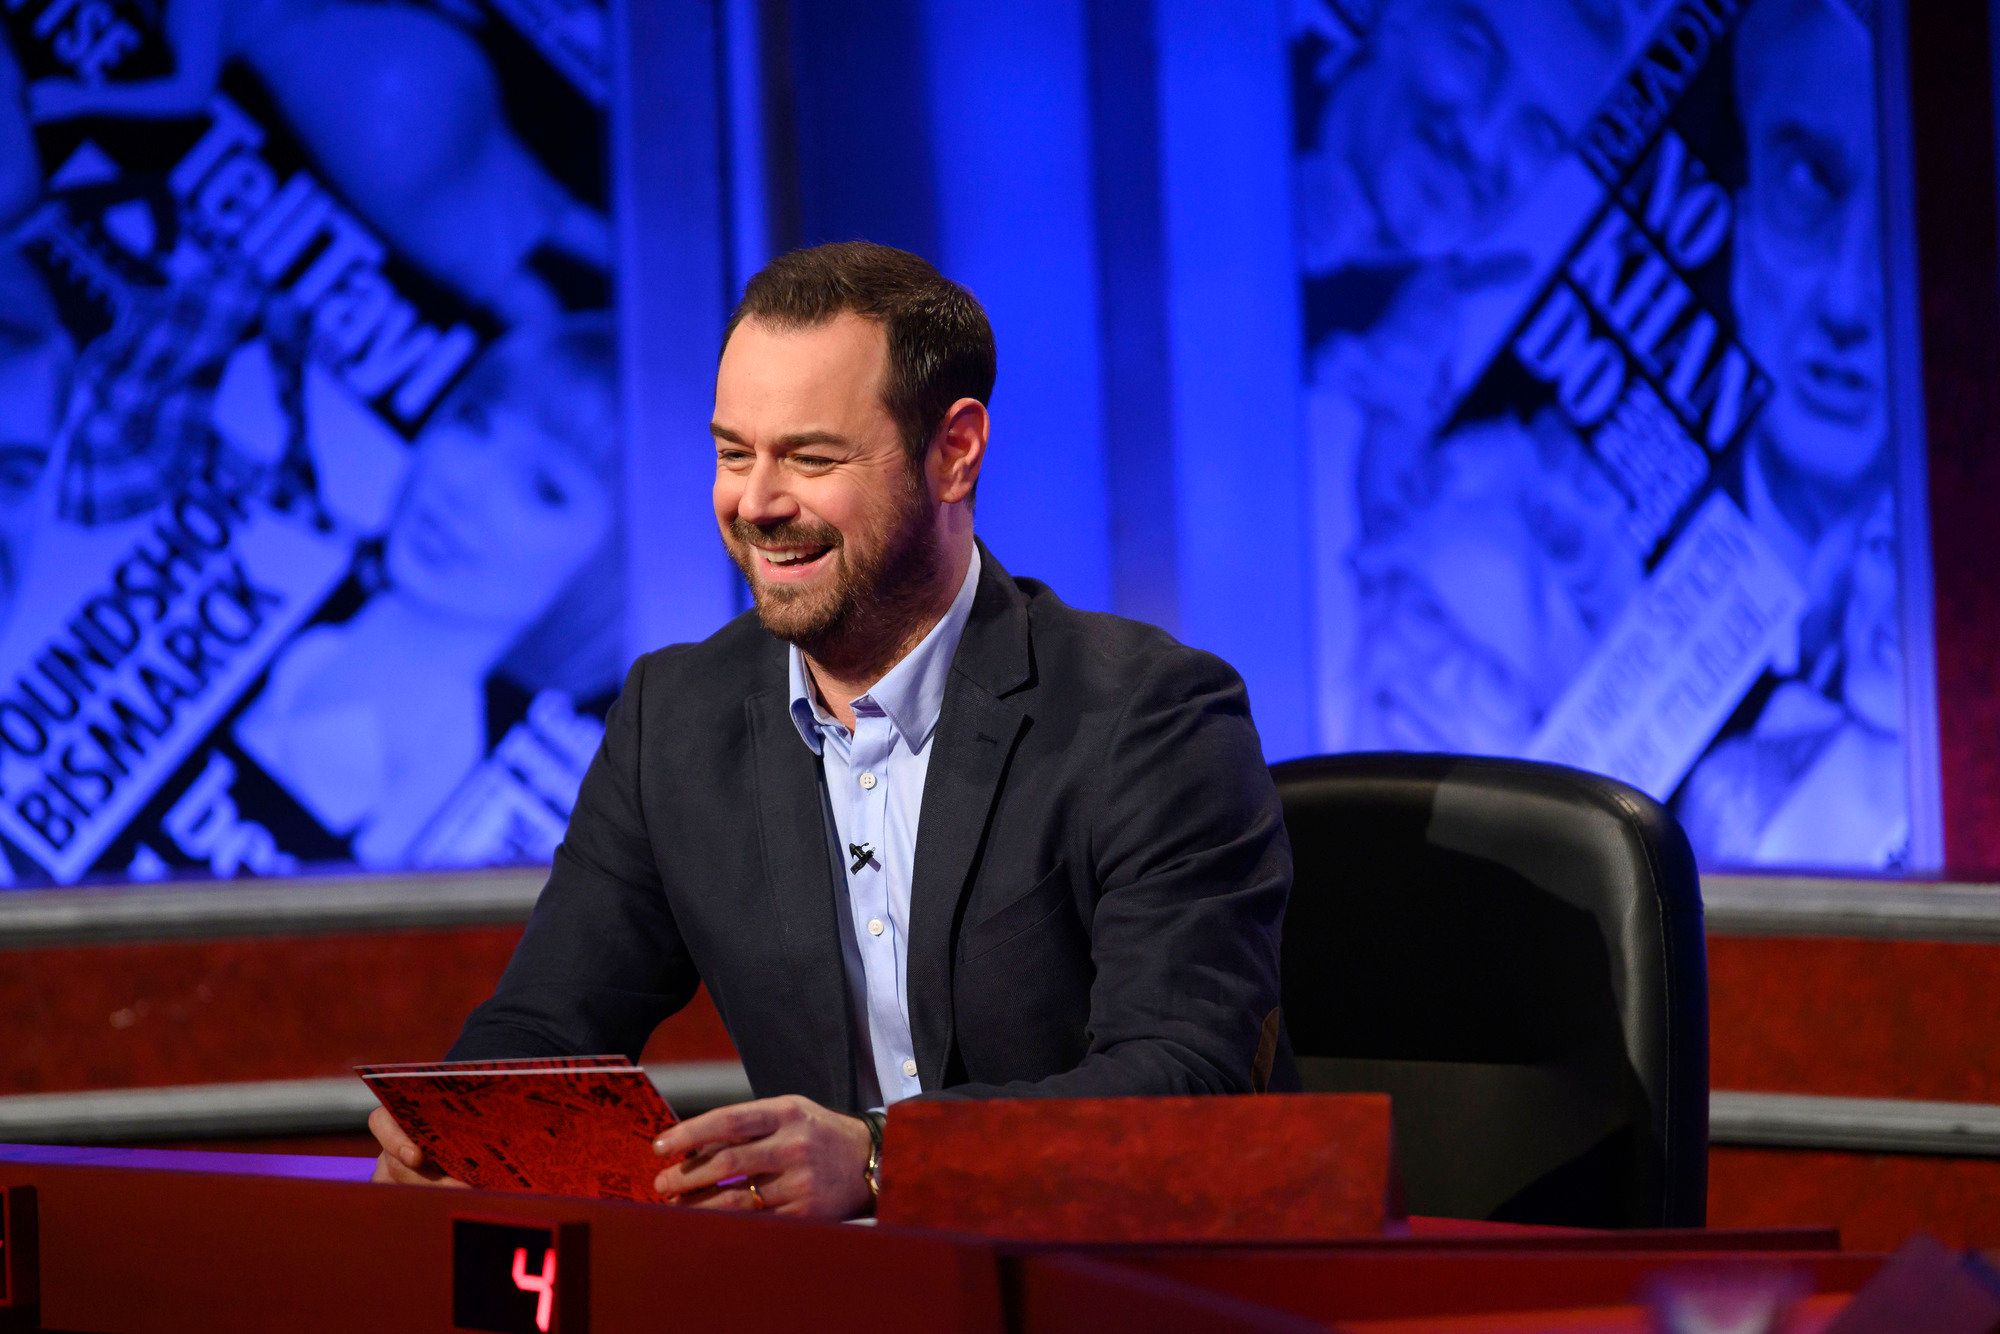 Danny Dyer's 'Have I Got News For You' Stint Really Divided